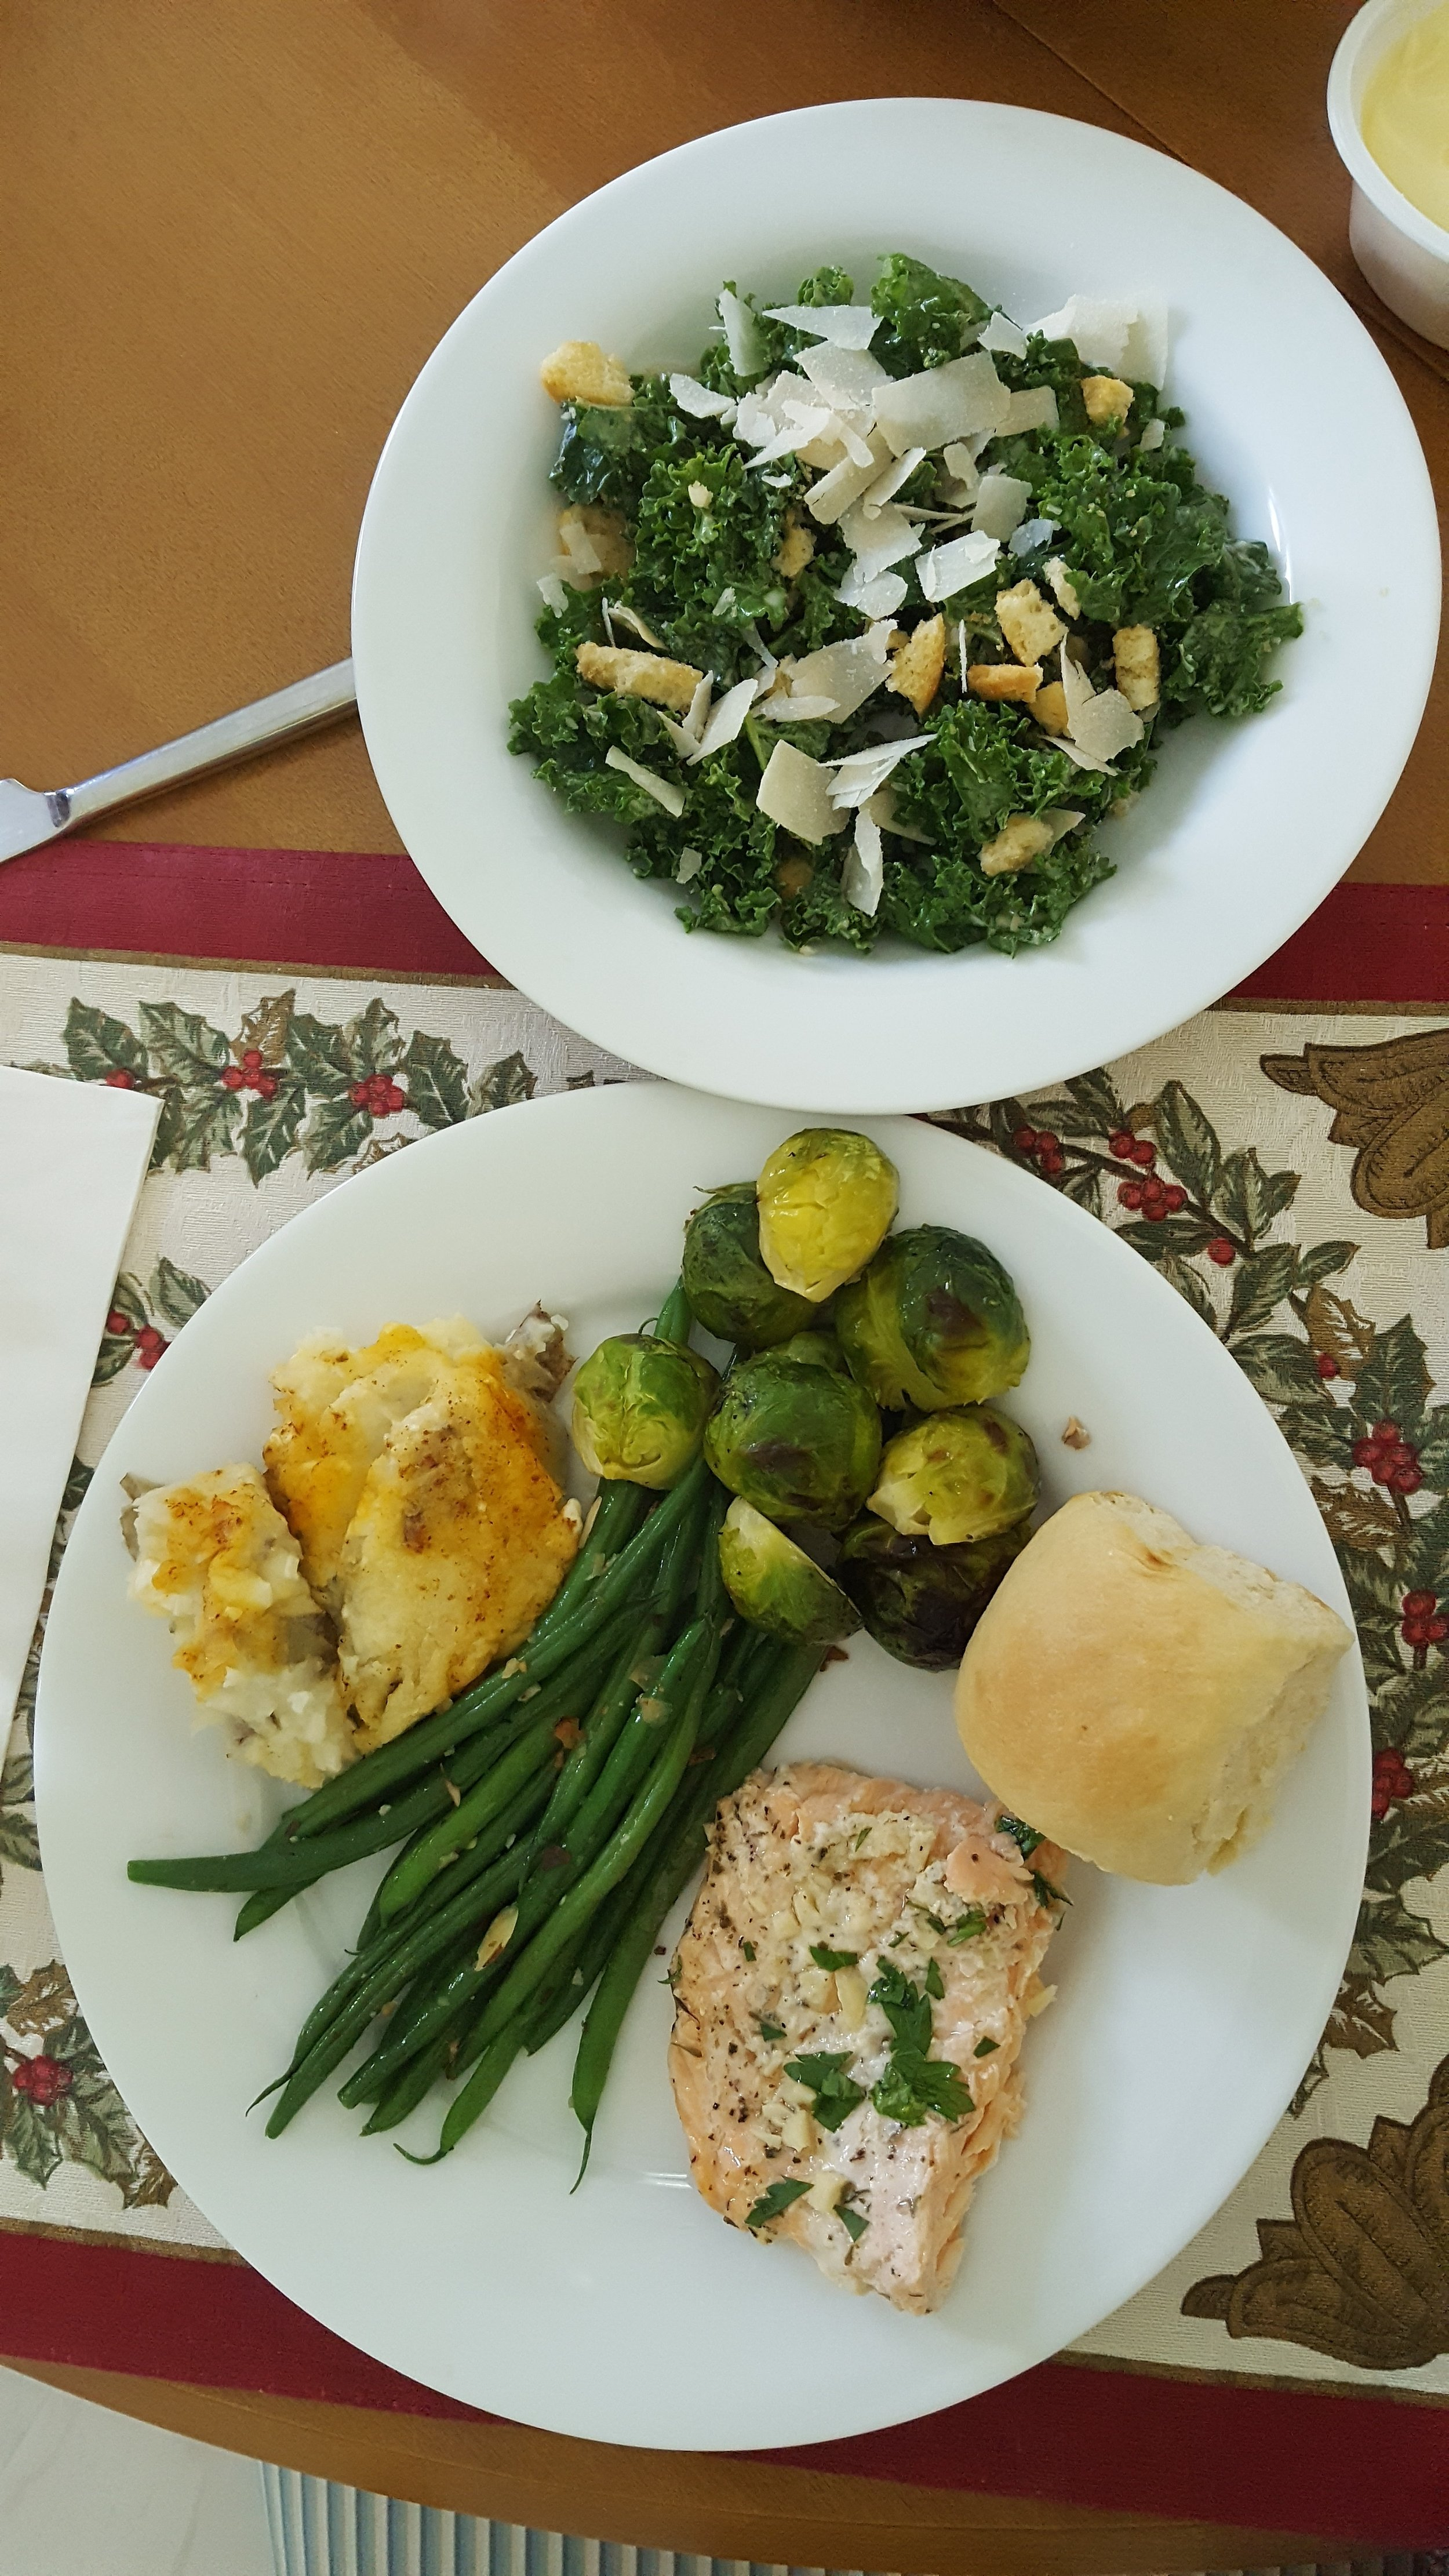 All the non-starchy veggies: kale, green beans, Brussels. And that made way for room for the carbs: roll, potato, and dessert (not pictured).